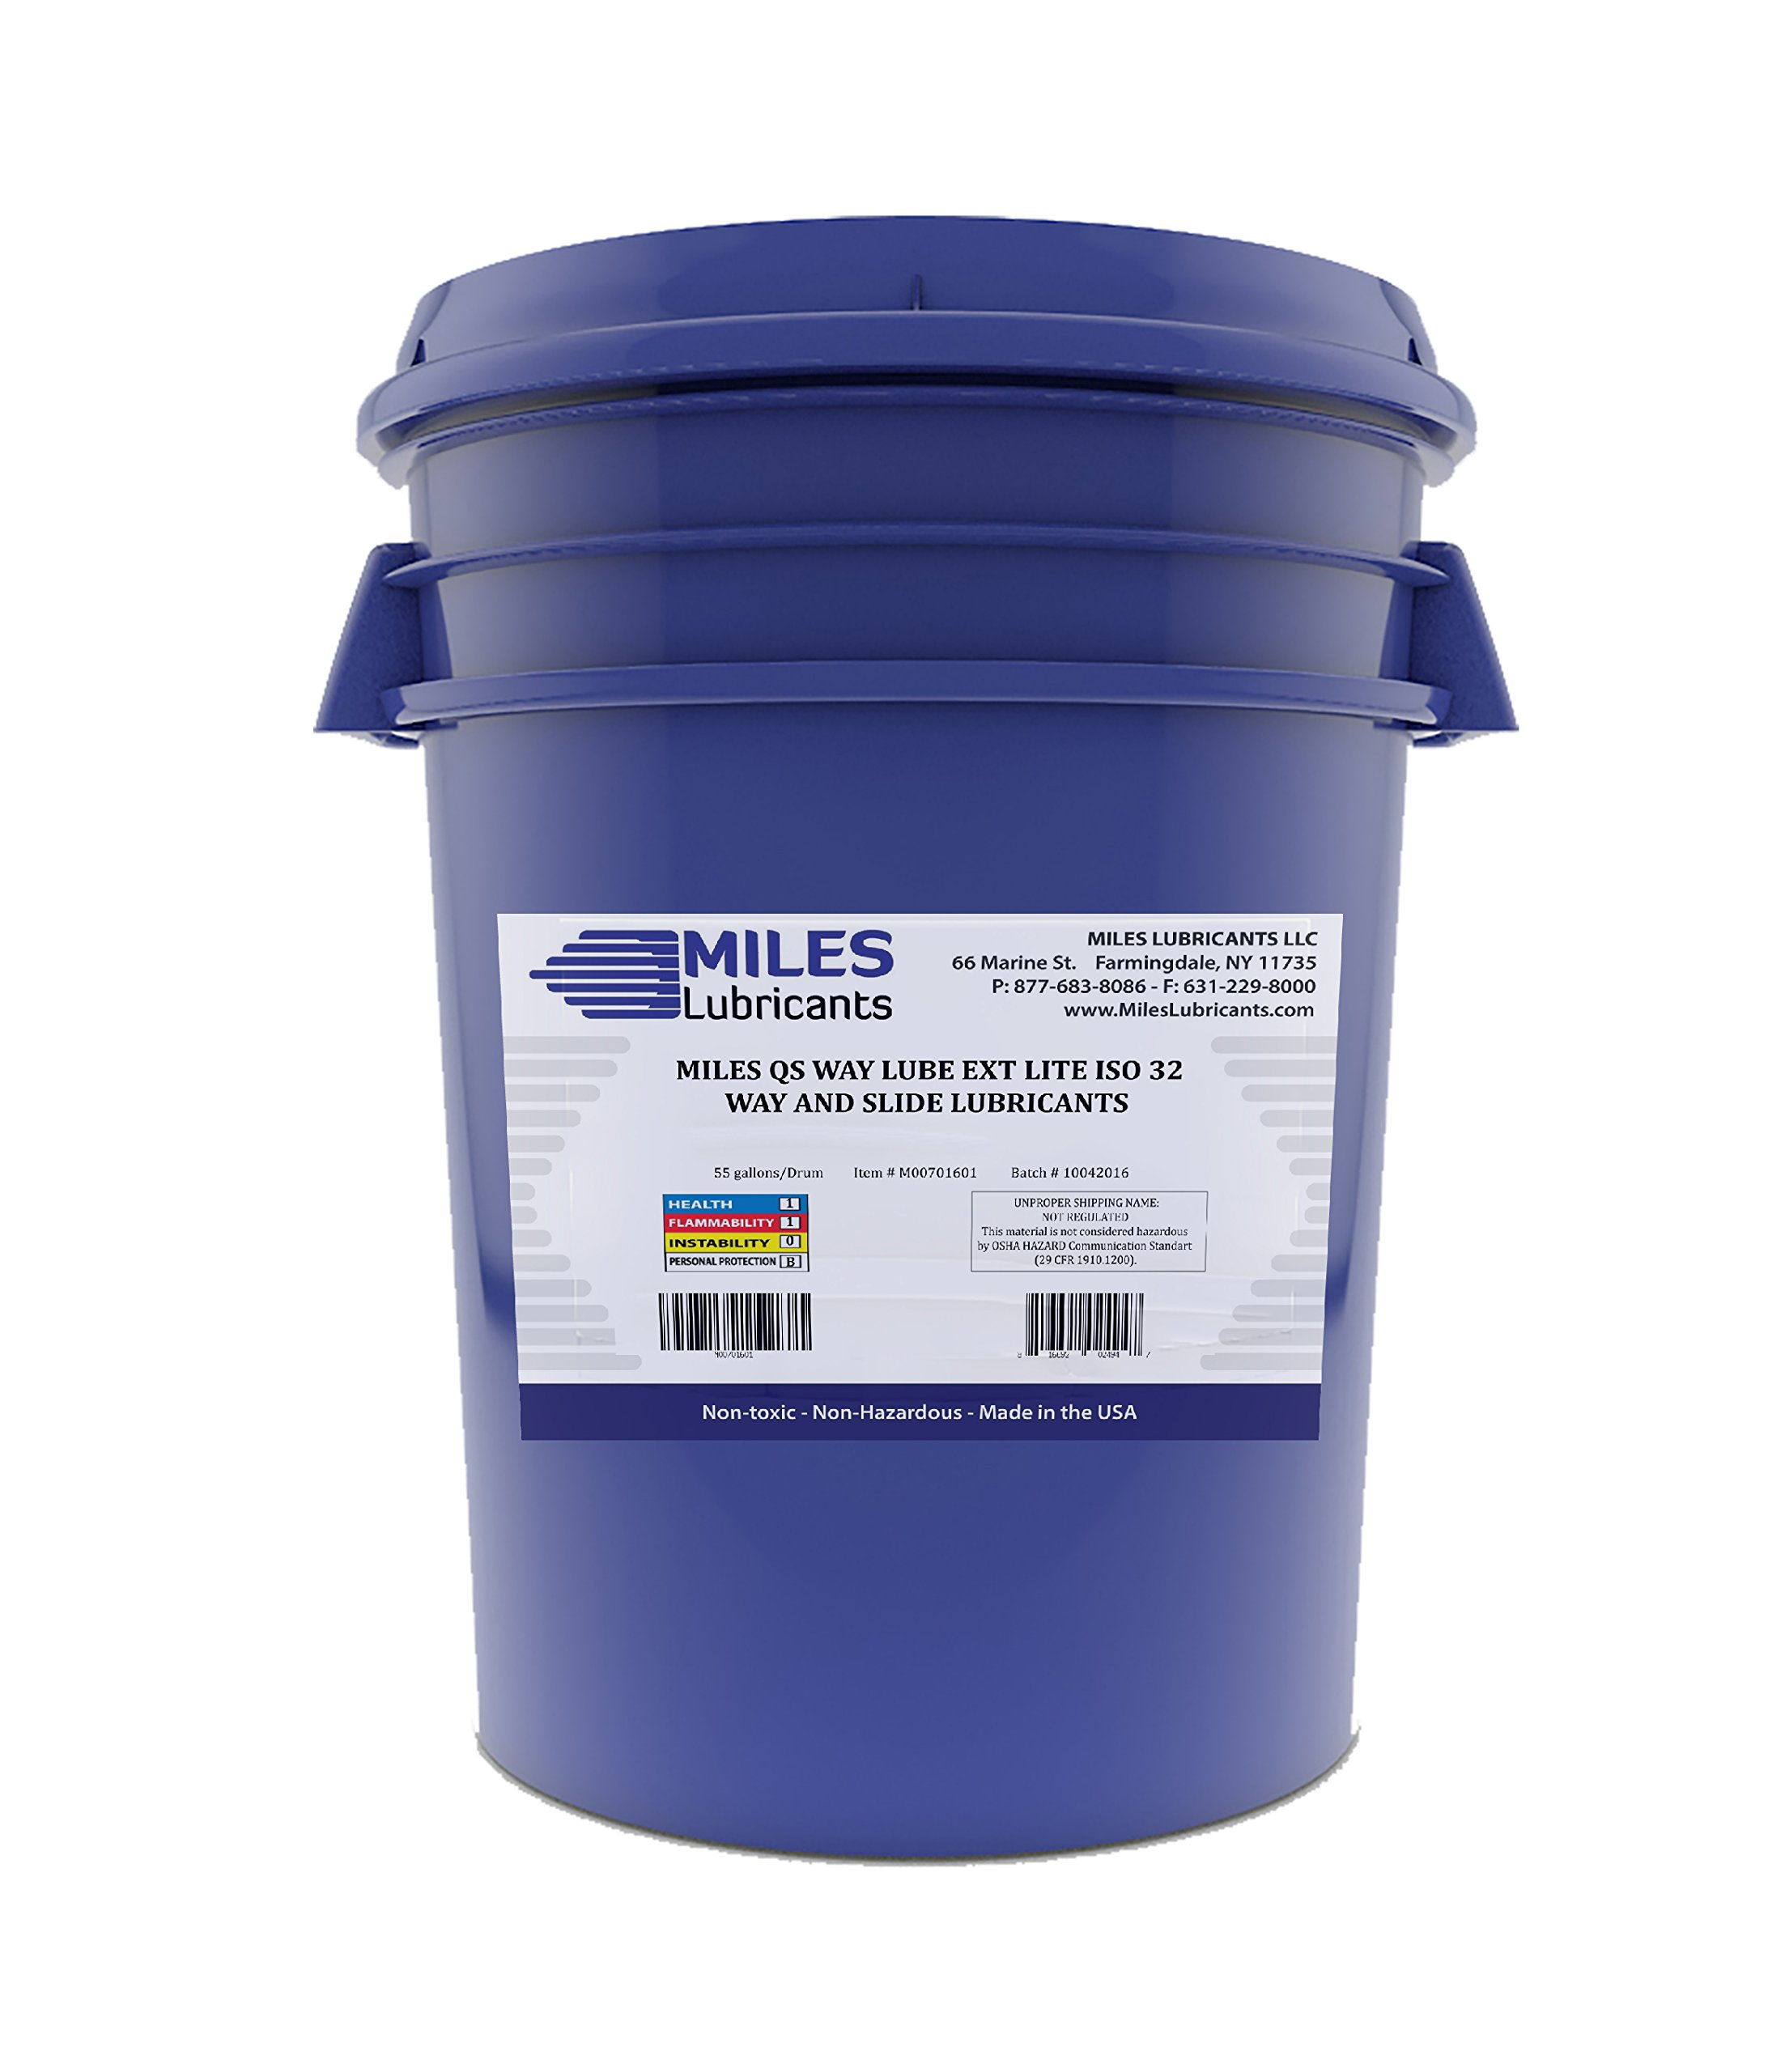 Miles Qs Way Lube Ext Lite ISO 32 Way And Slide Lubricant 5 Gallon Pail